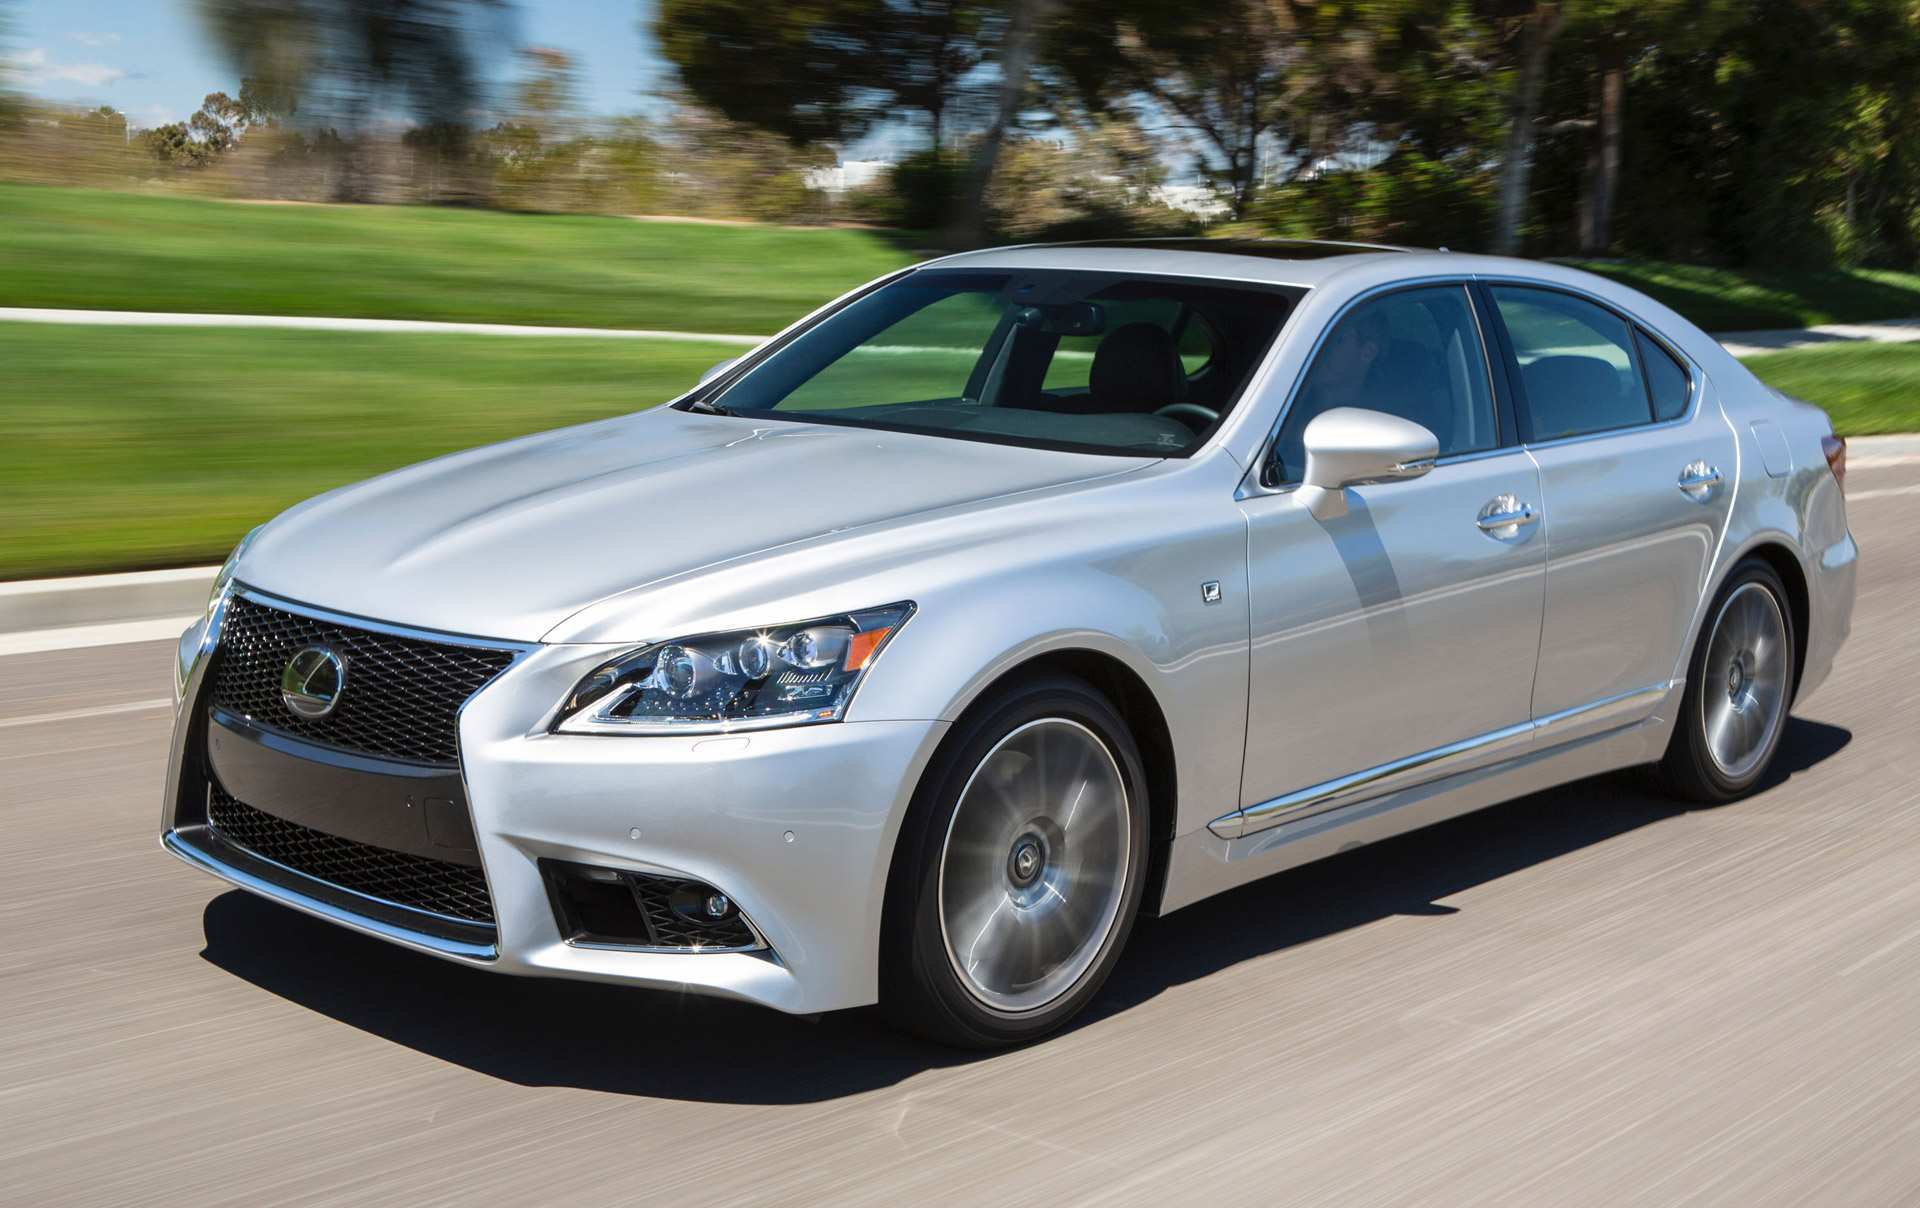 60 All New Lexus Ls 460 Pictures Performance and New Engine with Lexus Ls 460 Pictures